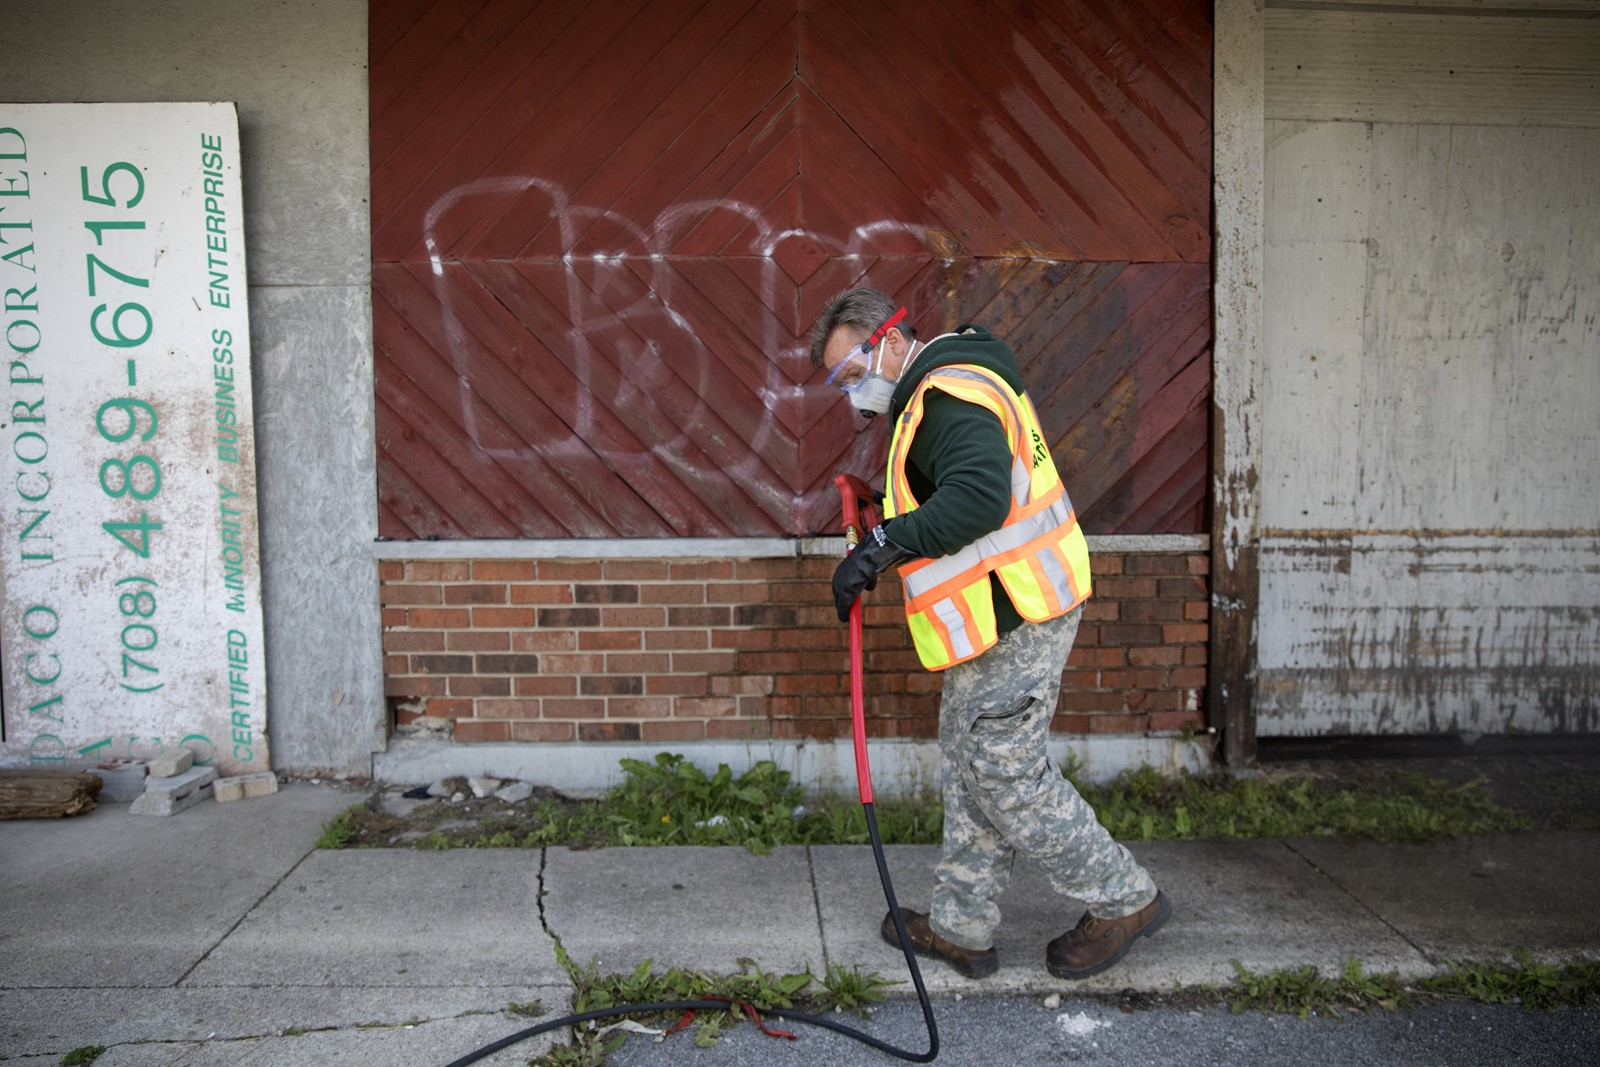 Chicago beefs up graffiti removal city